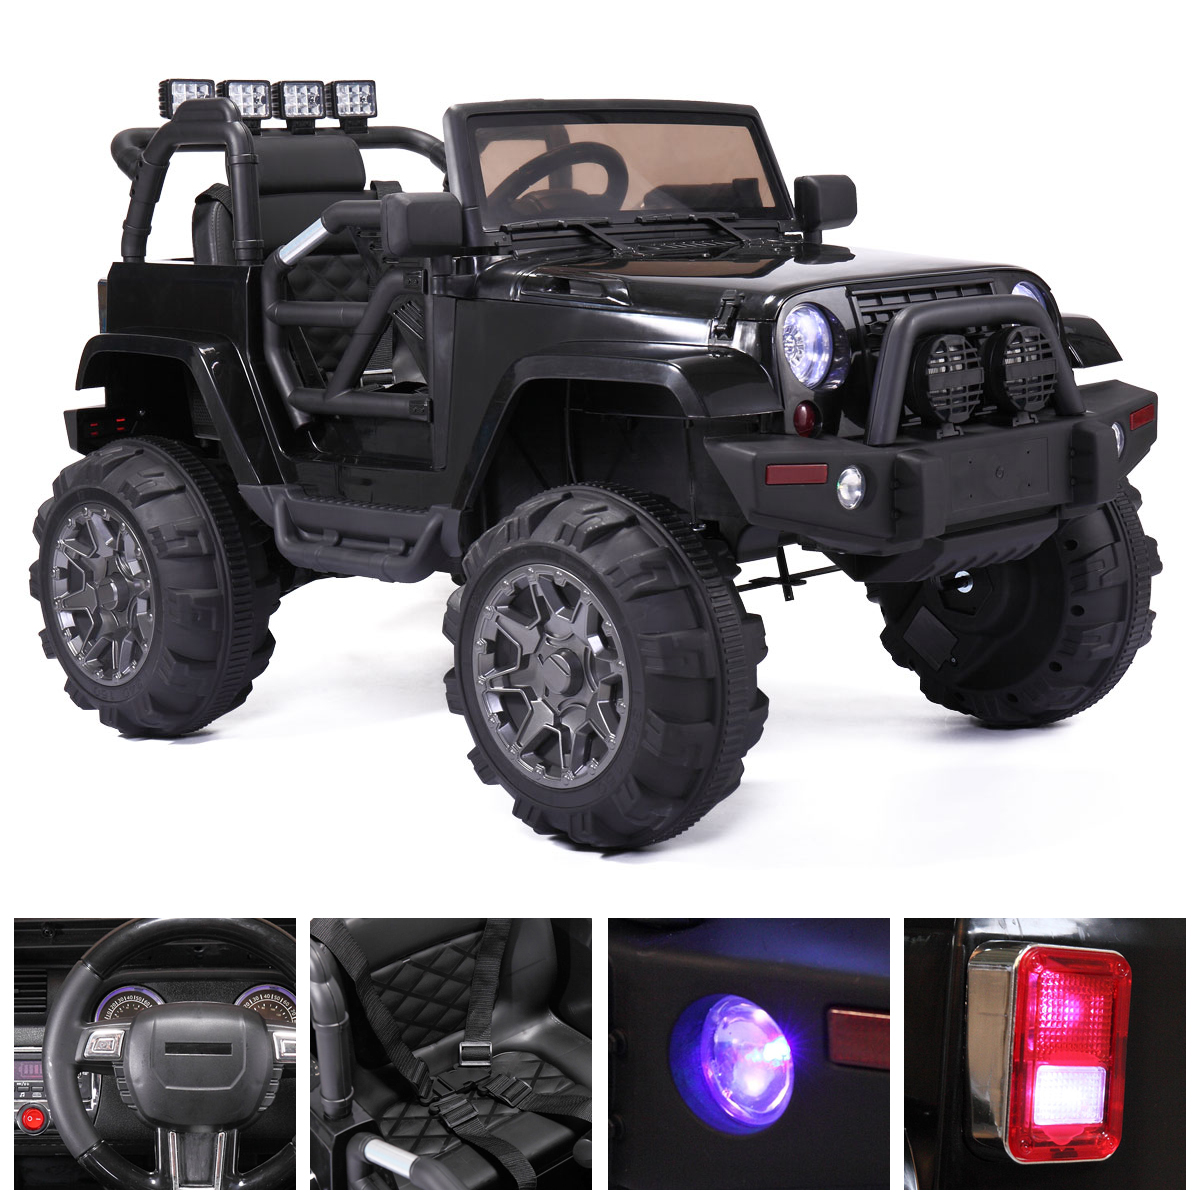 12V Ride On Car Kids W  MP3 Electric Battery Power RC Remote Control Black by Jaxpety